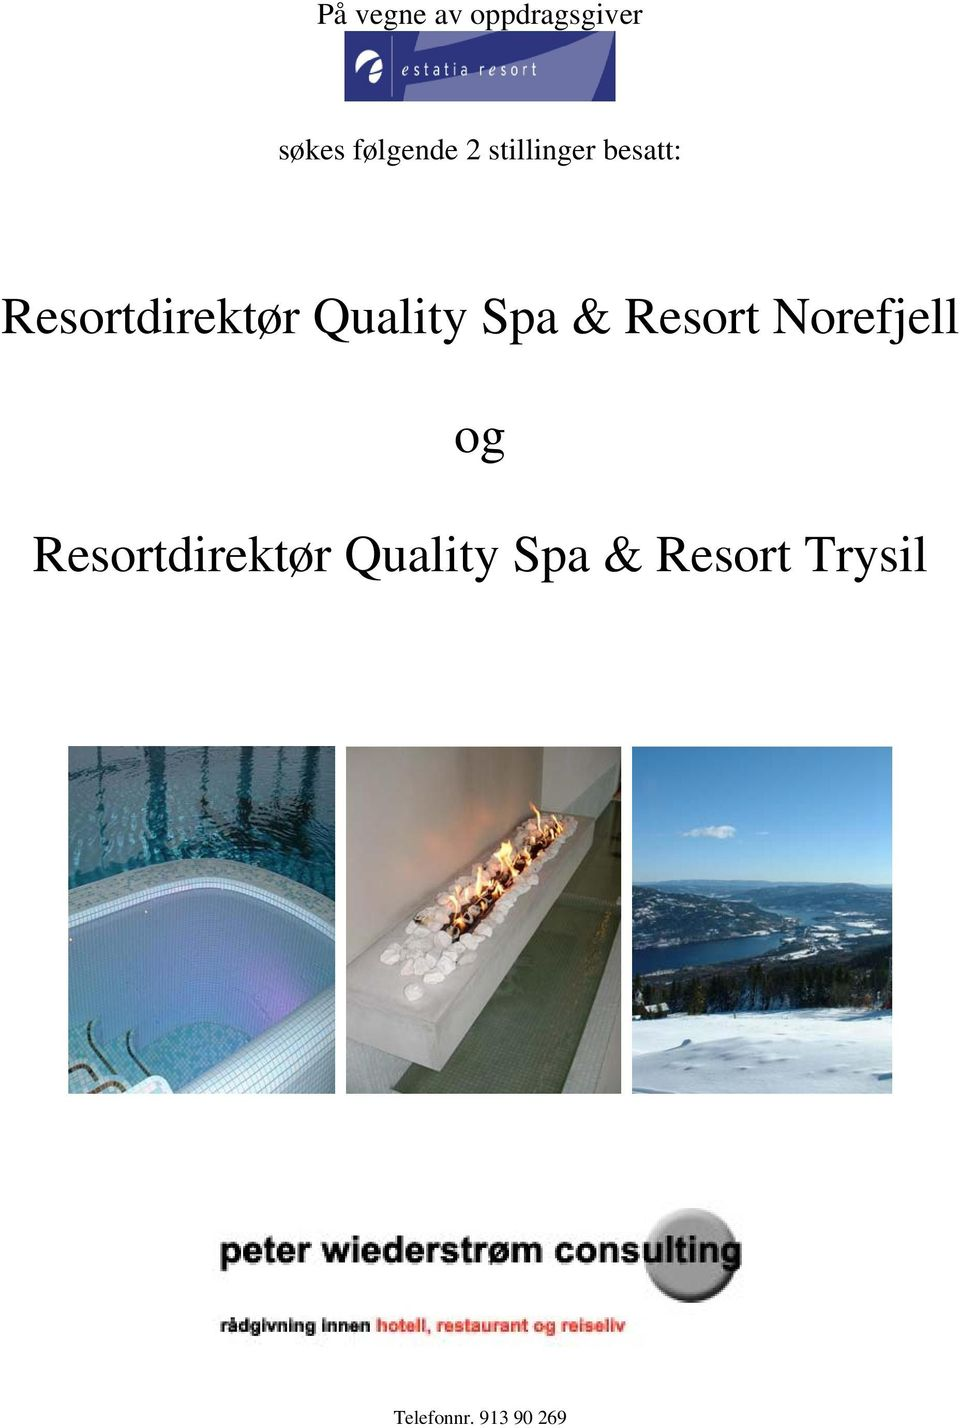 Spa & Resort Norefjell og Resortdirektør